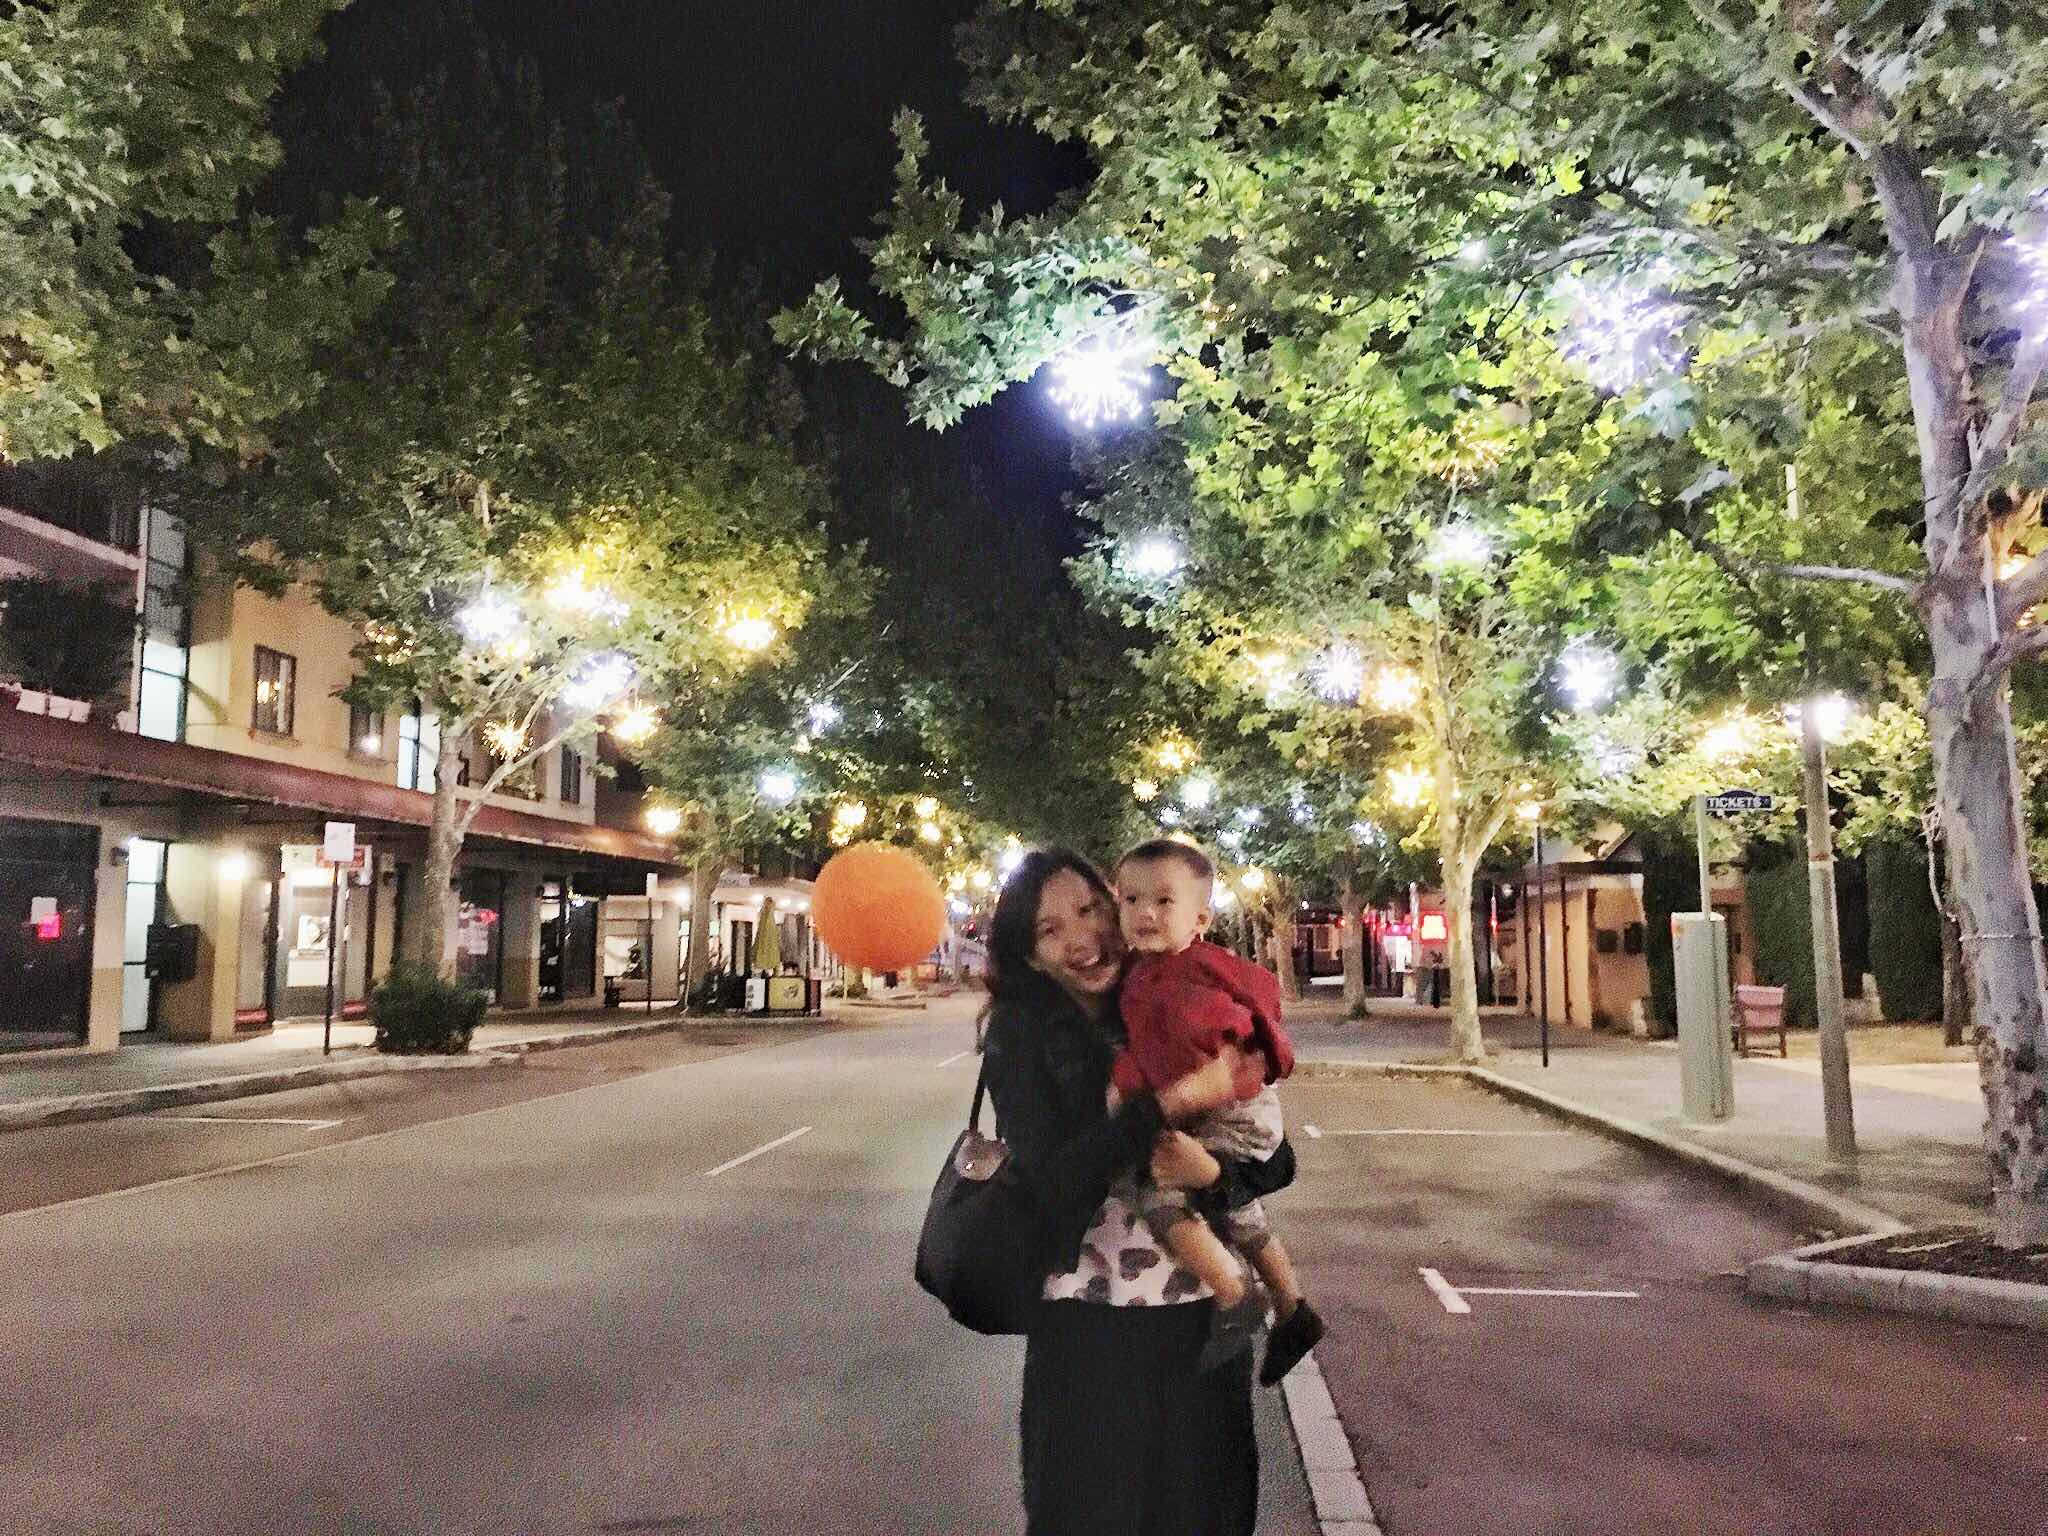 Candice with baby & jacket